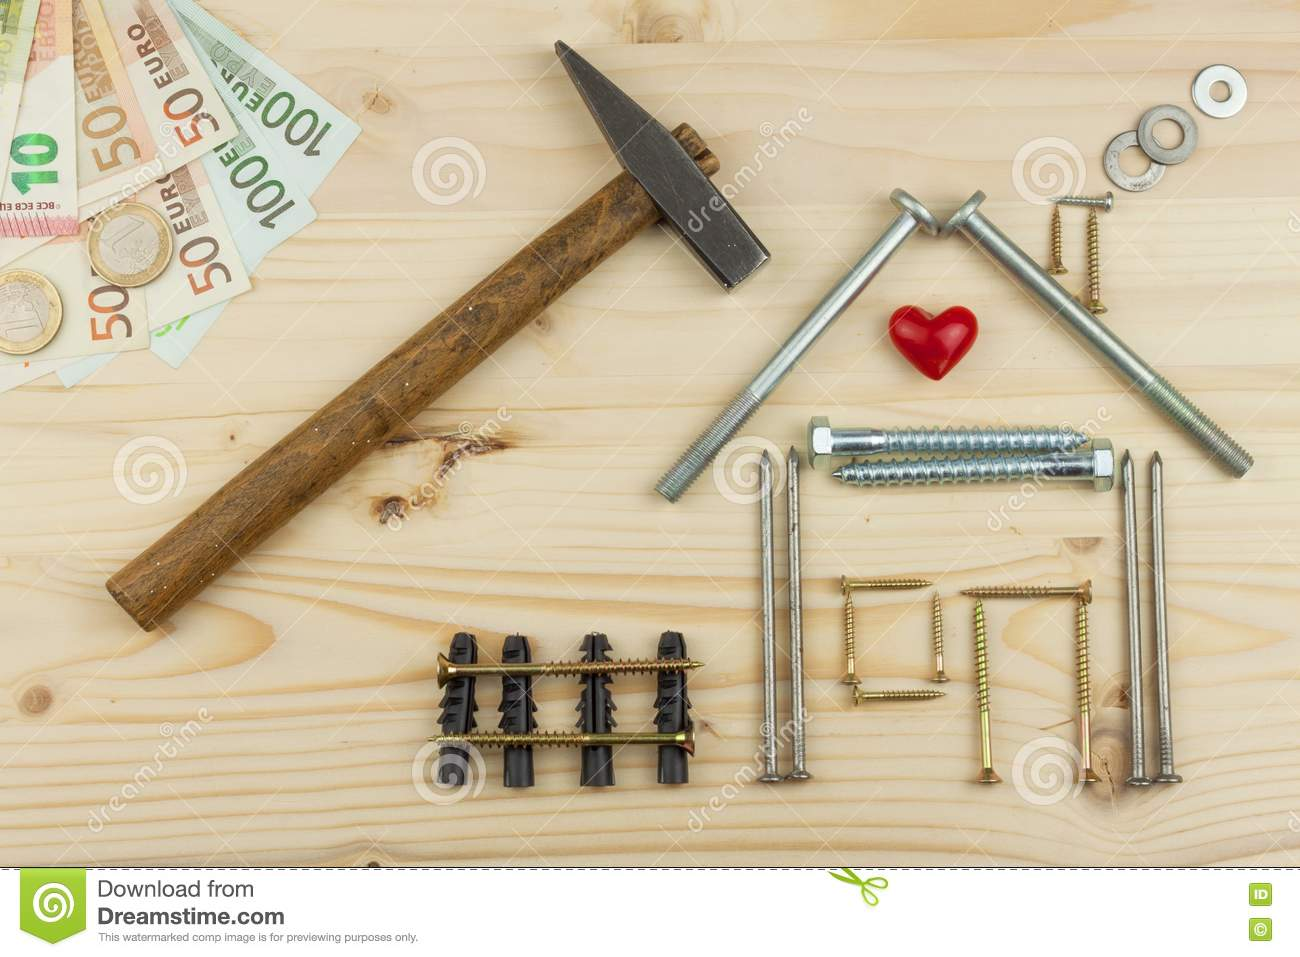 Mortgage To Build A House For The Family. Real Money To Build A House. The  Loan Money For Housing. Construction Of A New House. Components, Idea.